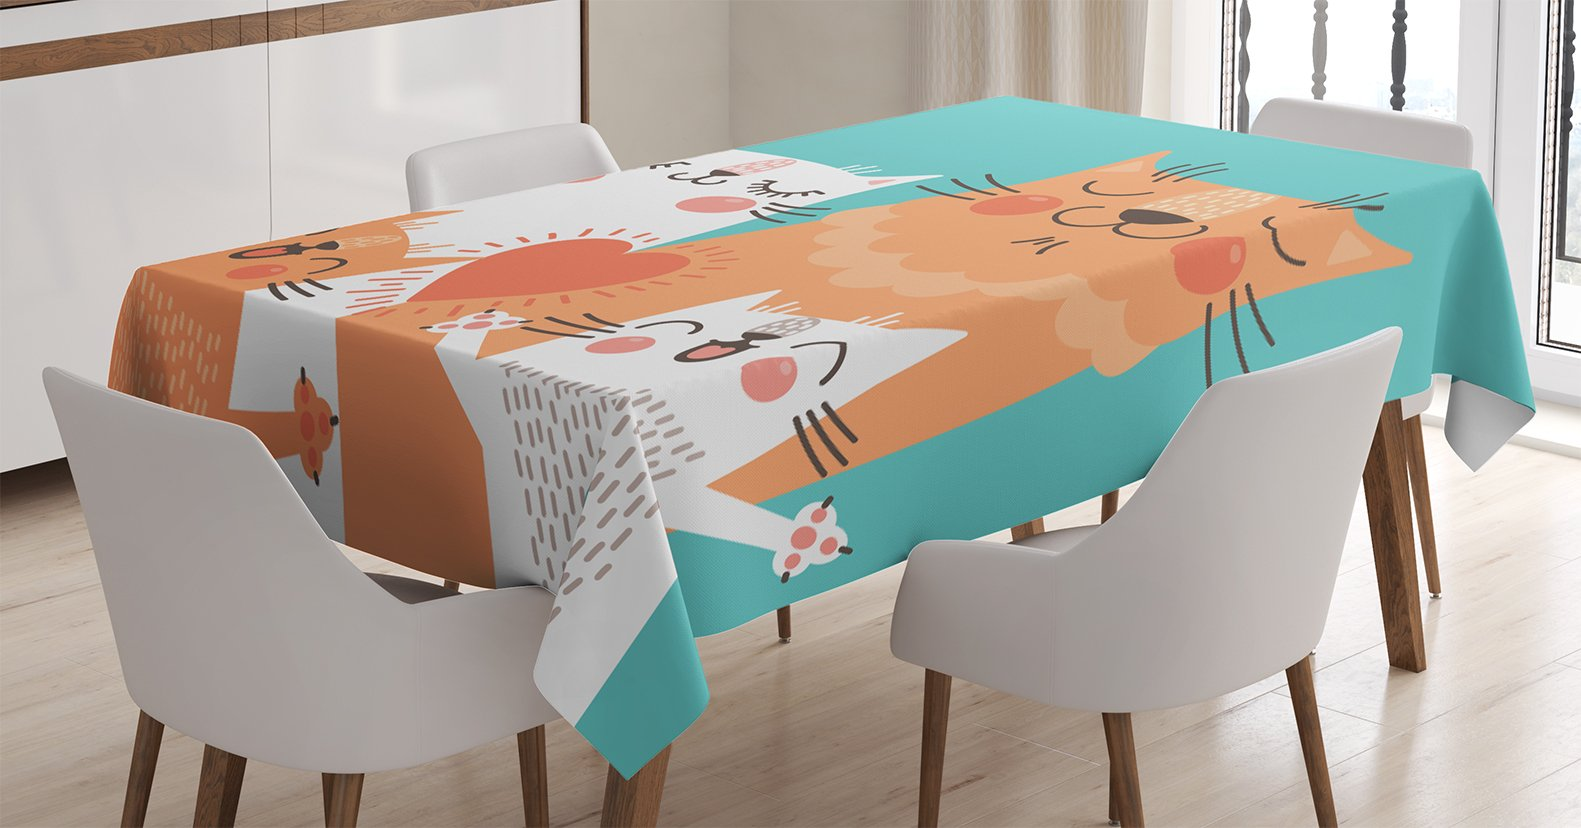 Ambesonne Funny Decor Tablecloth, Cute Kitten Couple Sweet Happy Paws Loving Heart with Family Cats Poster Style Animal Art Theme, Dining Room Kitchen Rectangular Table Cover, 60 X 84 inches by Ambesonne